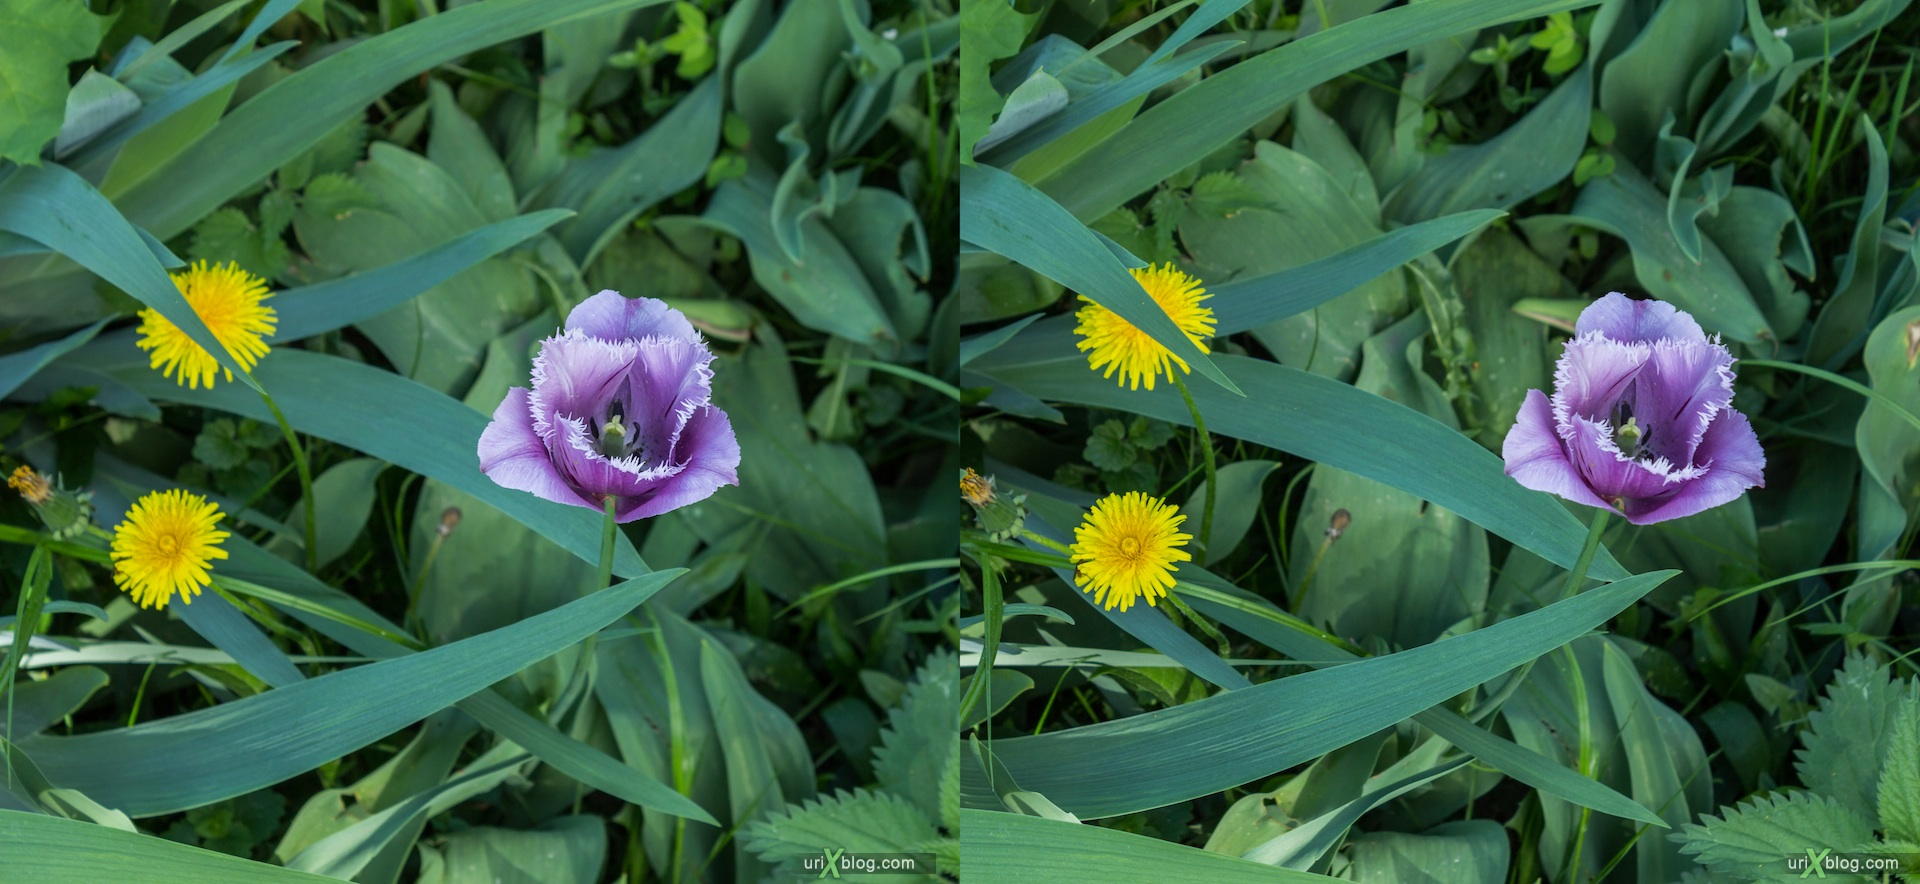 2013, tulip, dandelions, flower, grass, park, field, Moscow, Russia, spring, 3D, stereo pair, cross-eyed, crossview, cross view stereo pair, stereoscopic